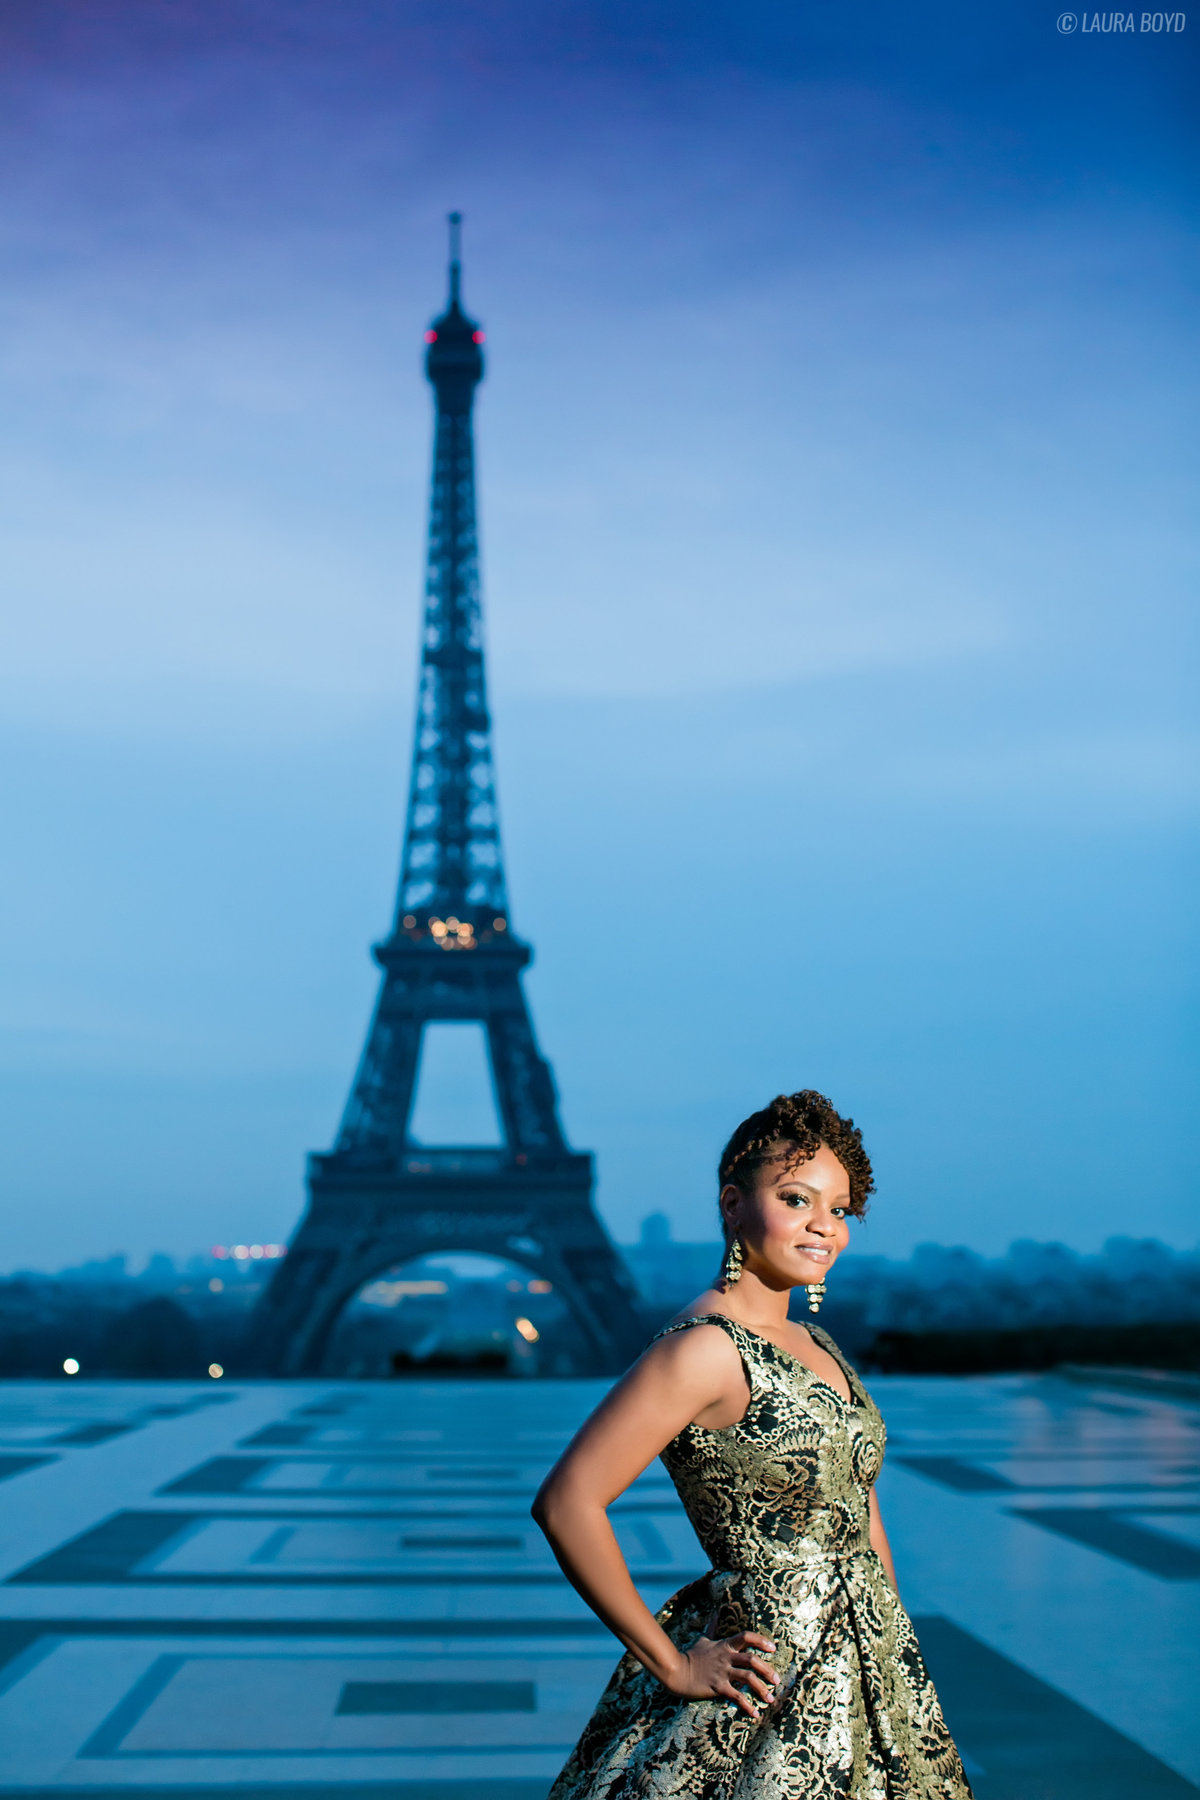 showit.laura.boyd.portraits.paris.3-2